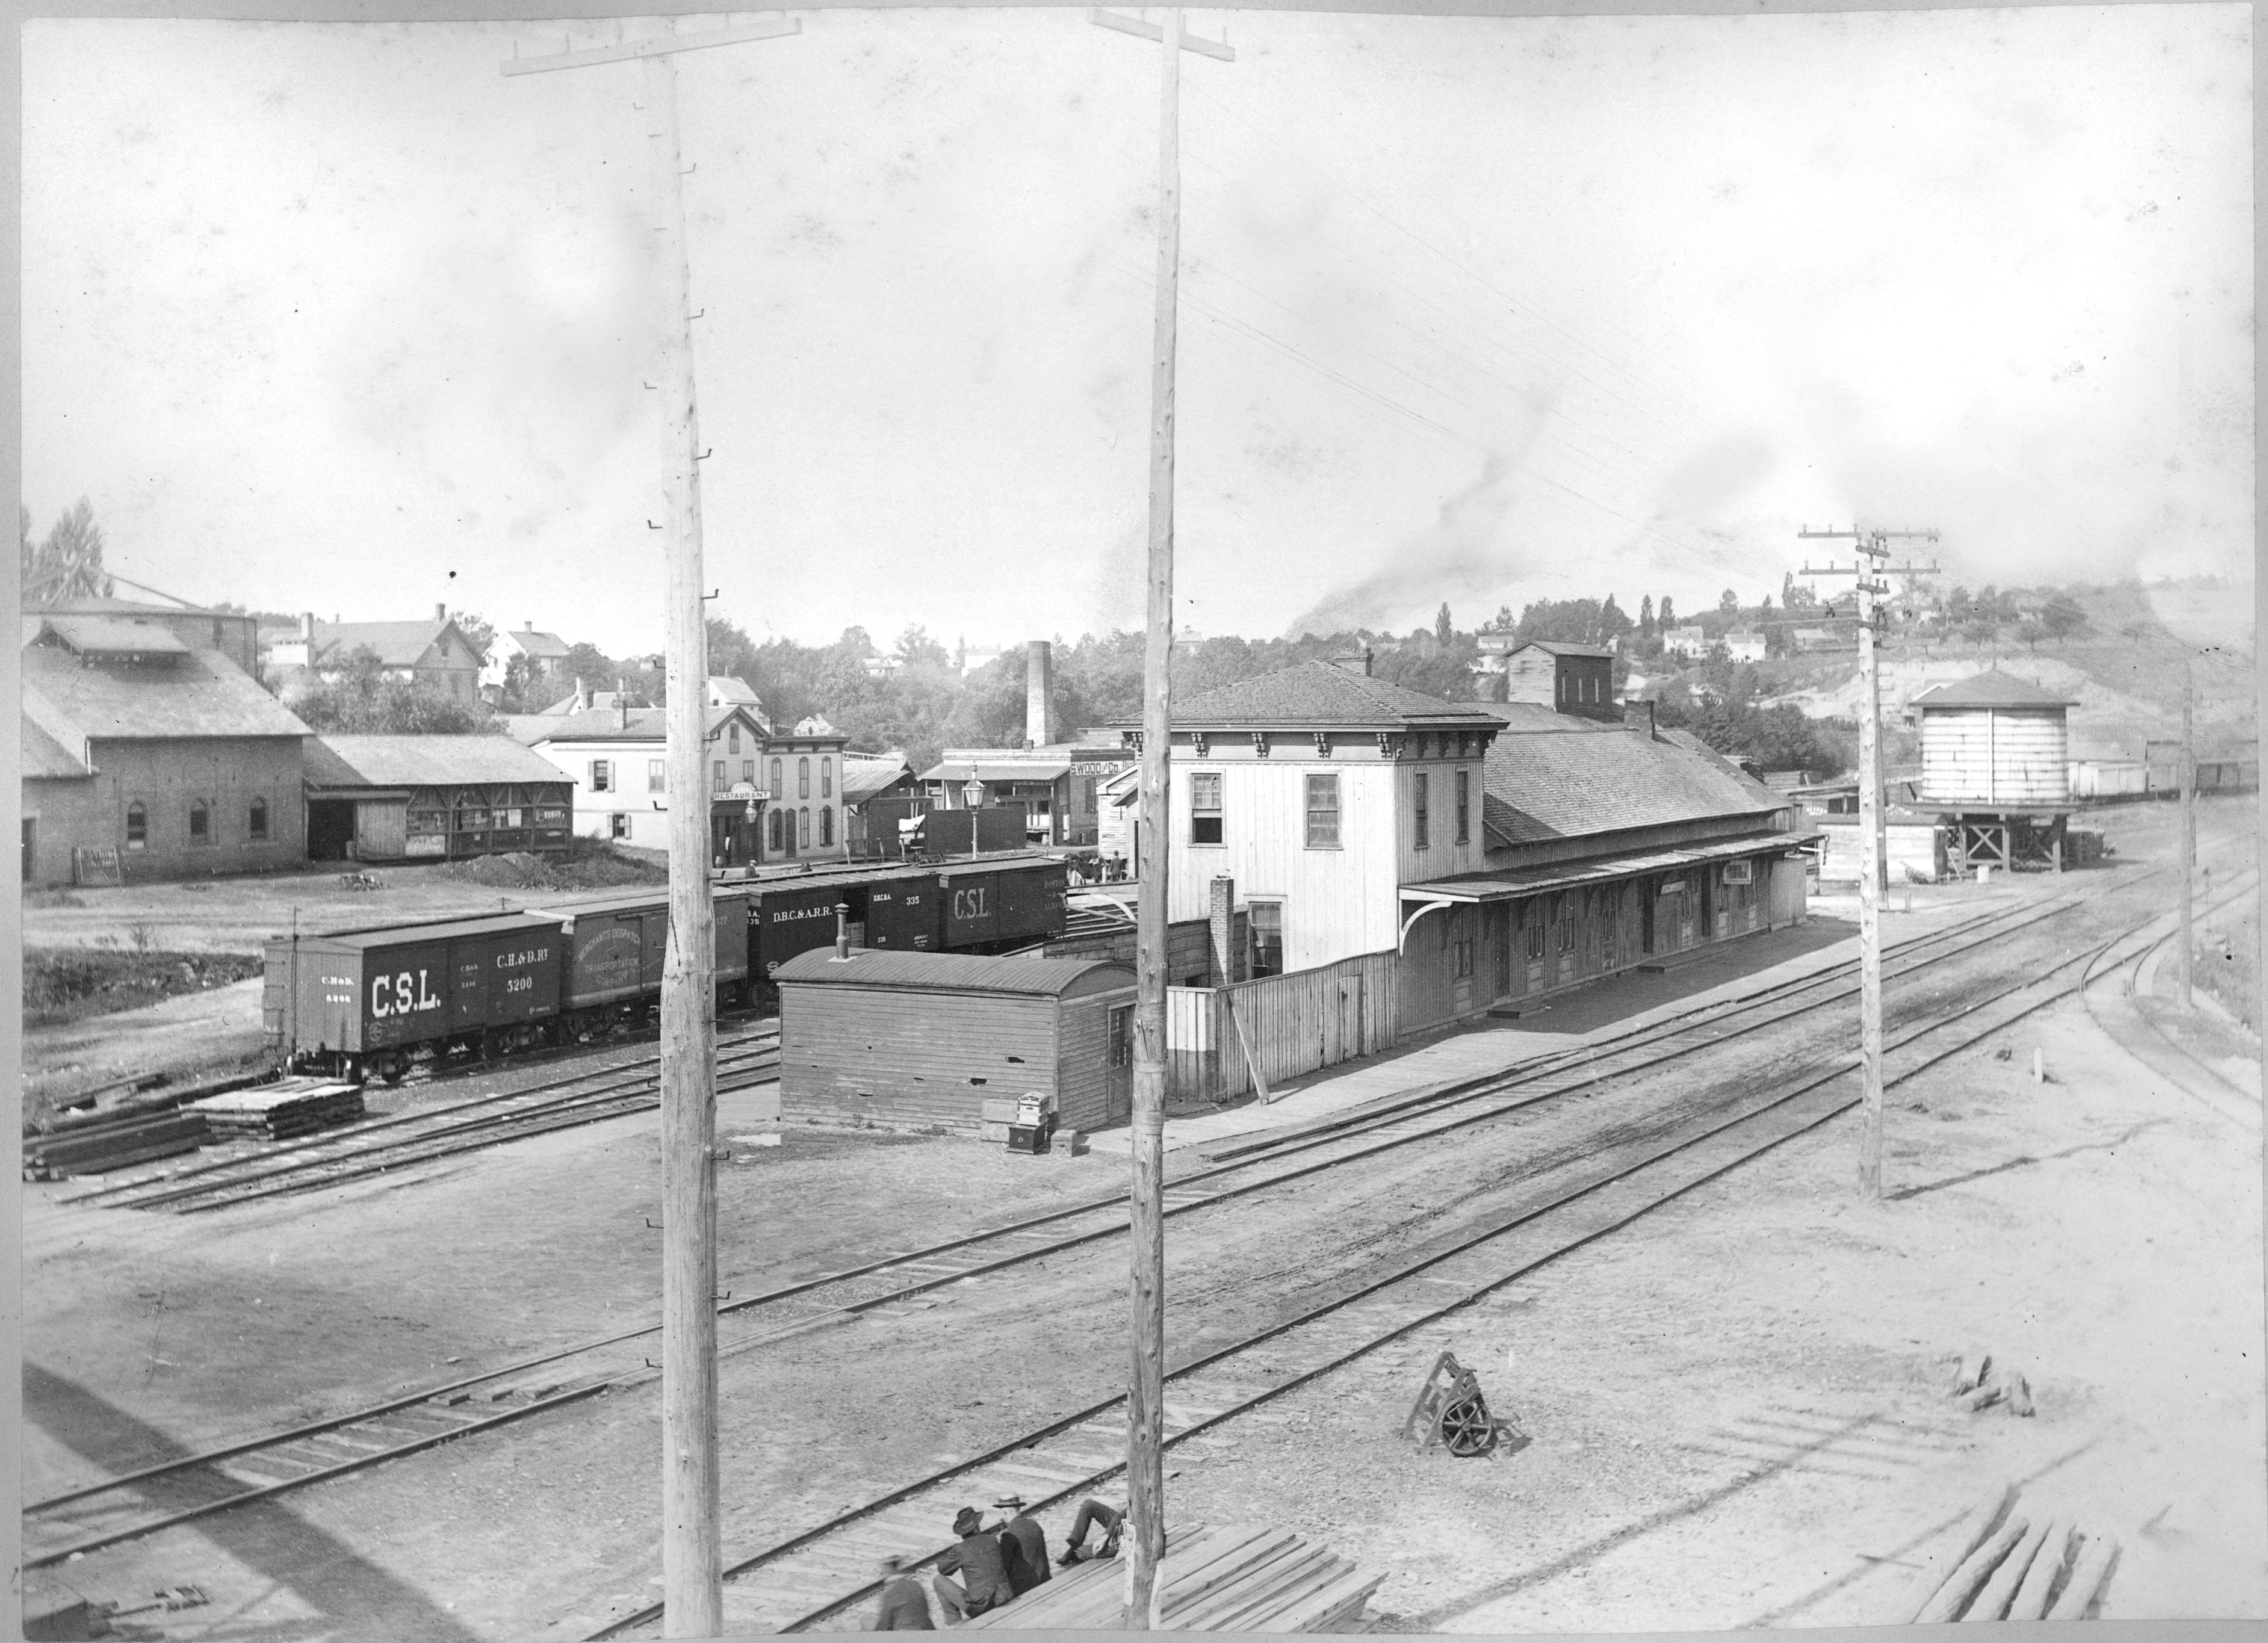 Michigan Central Railroad Depot, 1886 image